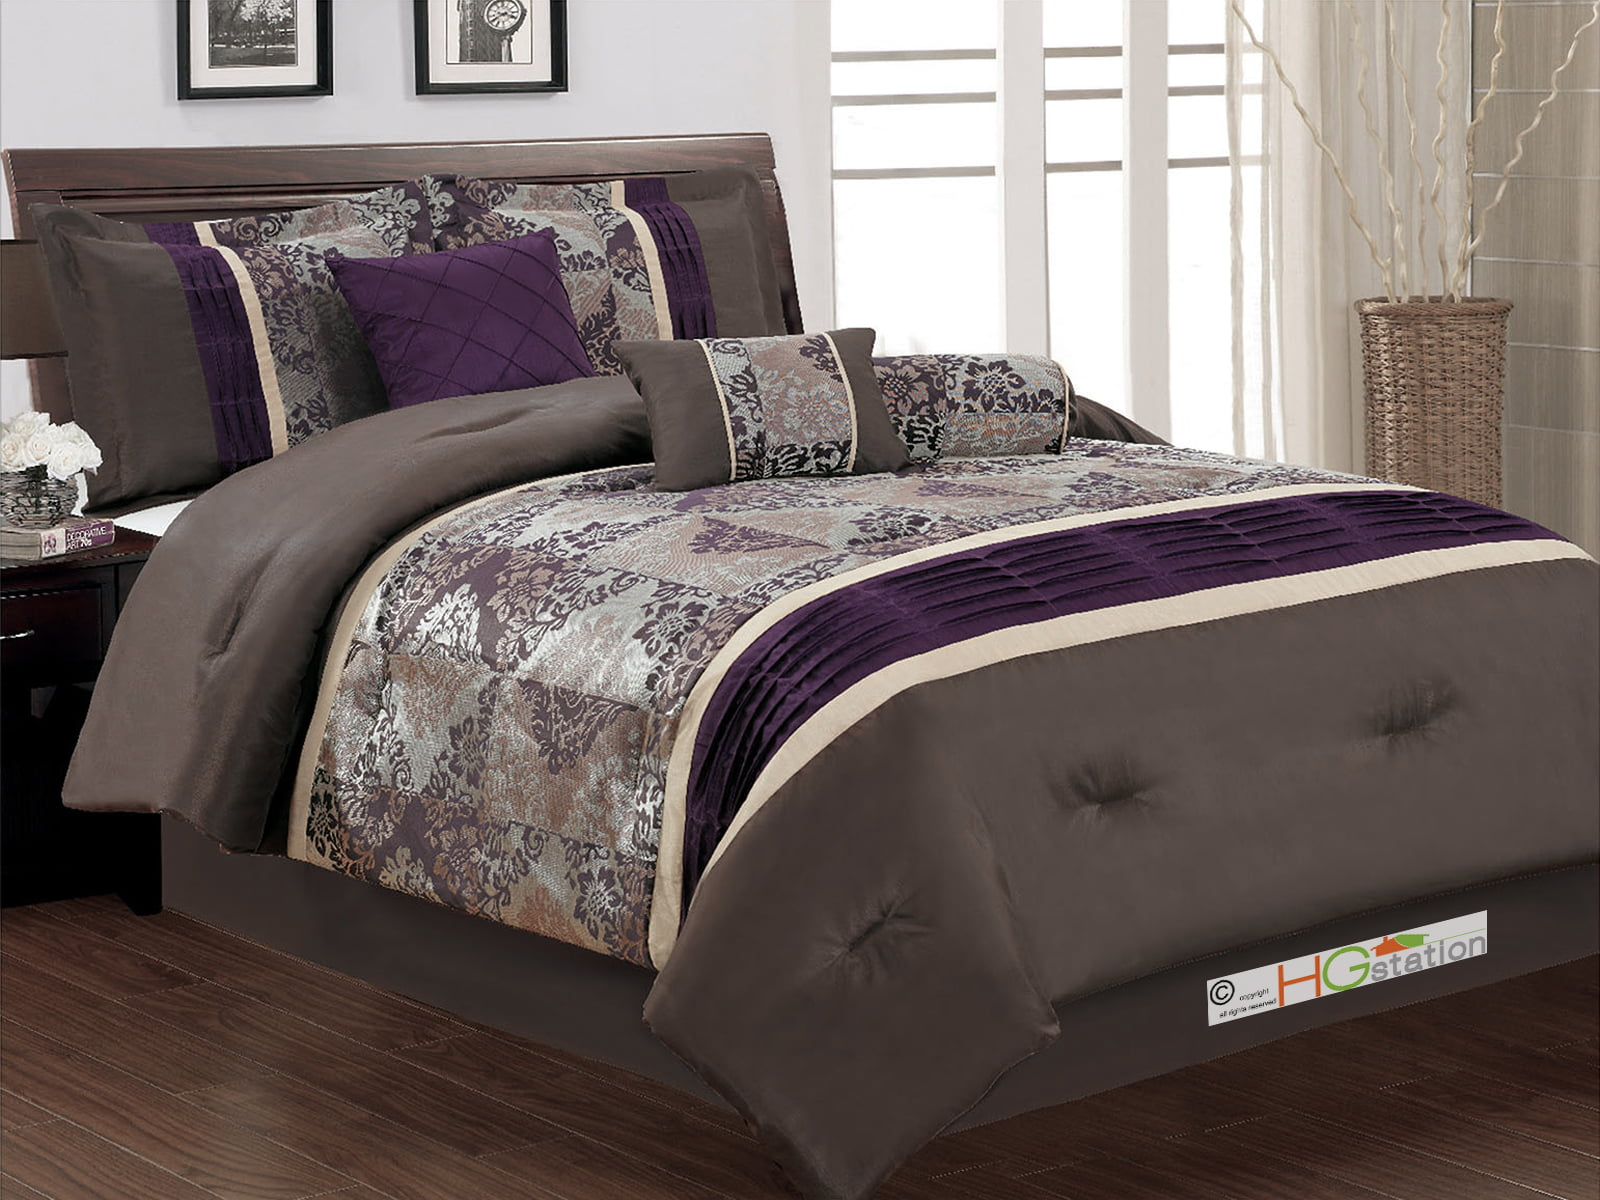 astor pin duvet minogue designer runner purple cushion bed or bedding amethyst kylie